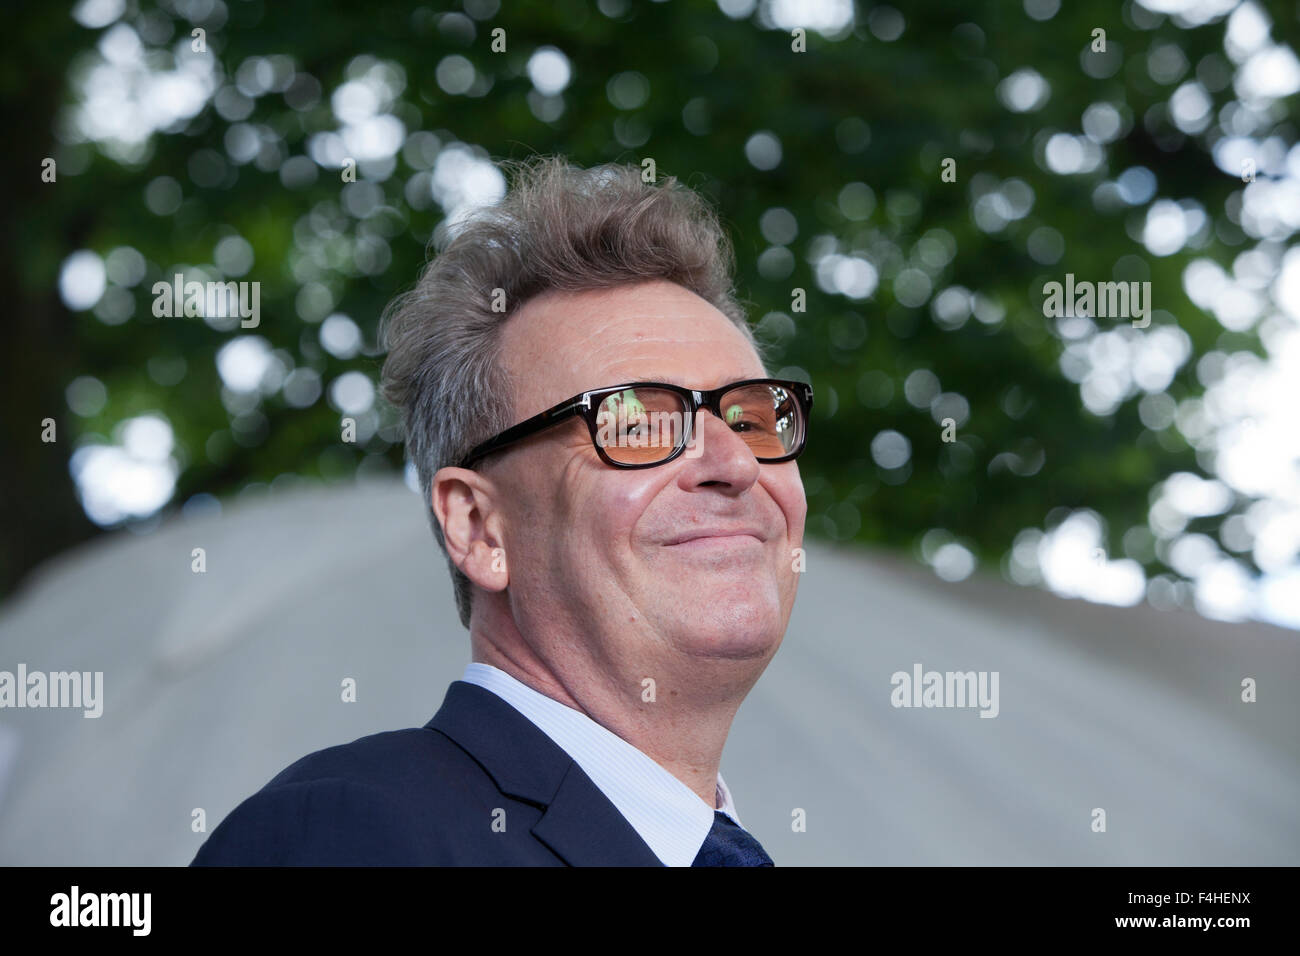 Gregory Everett 'Greg' Proops, the American actor, stand-up comedian and television host, writer, at the - Stock Image